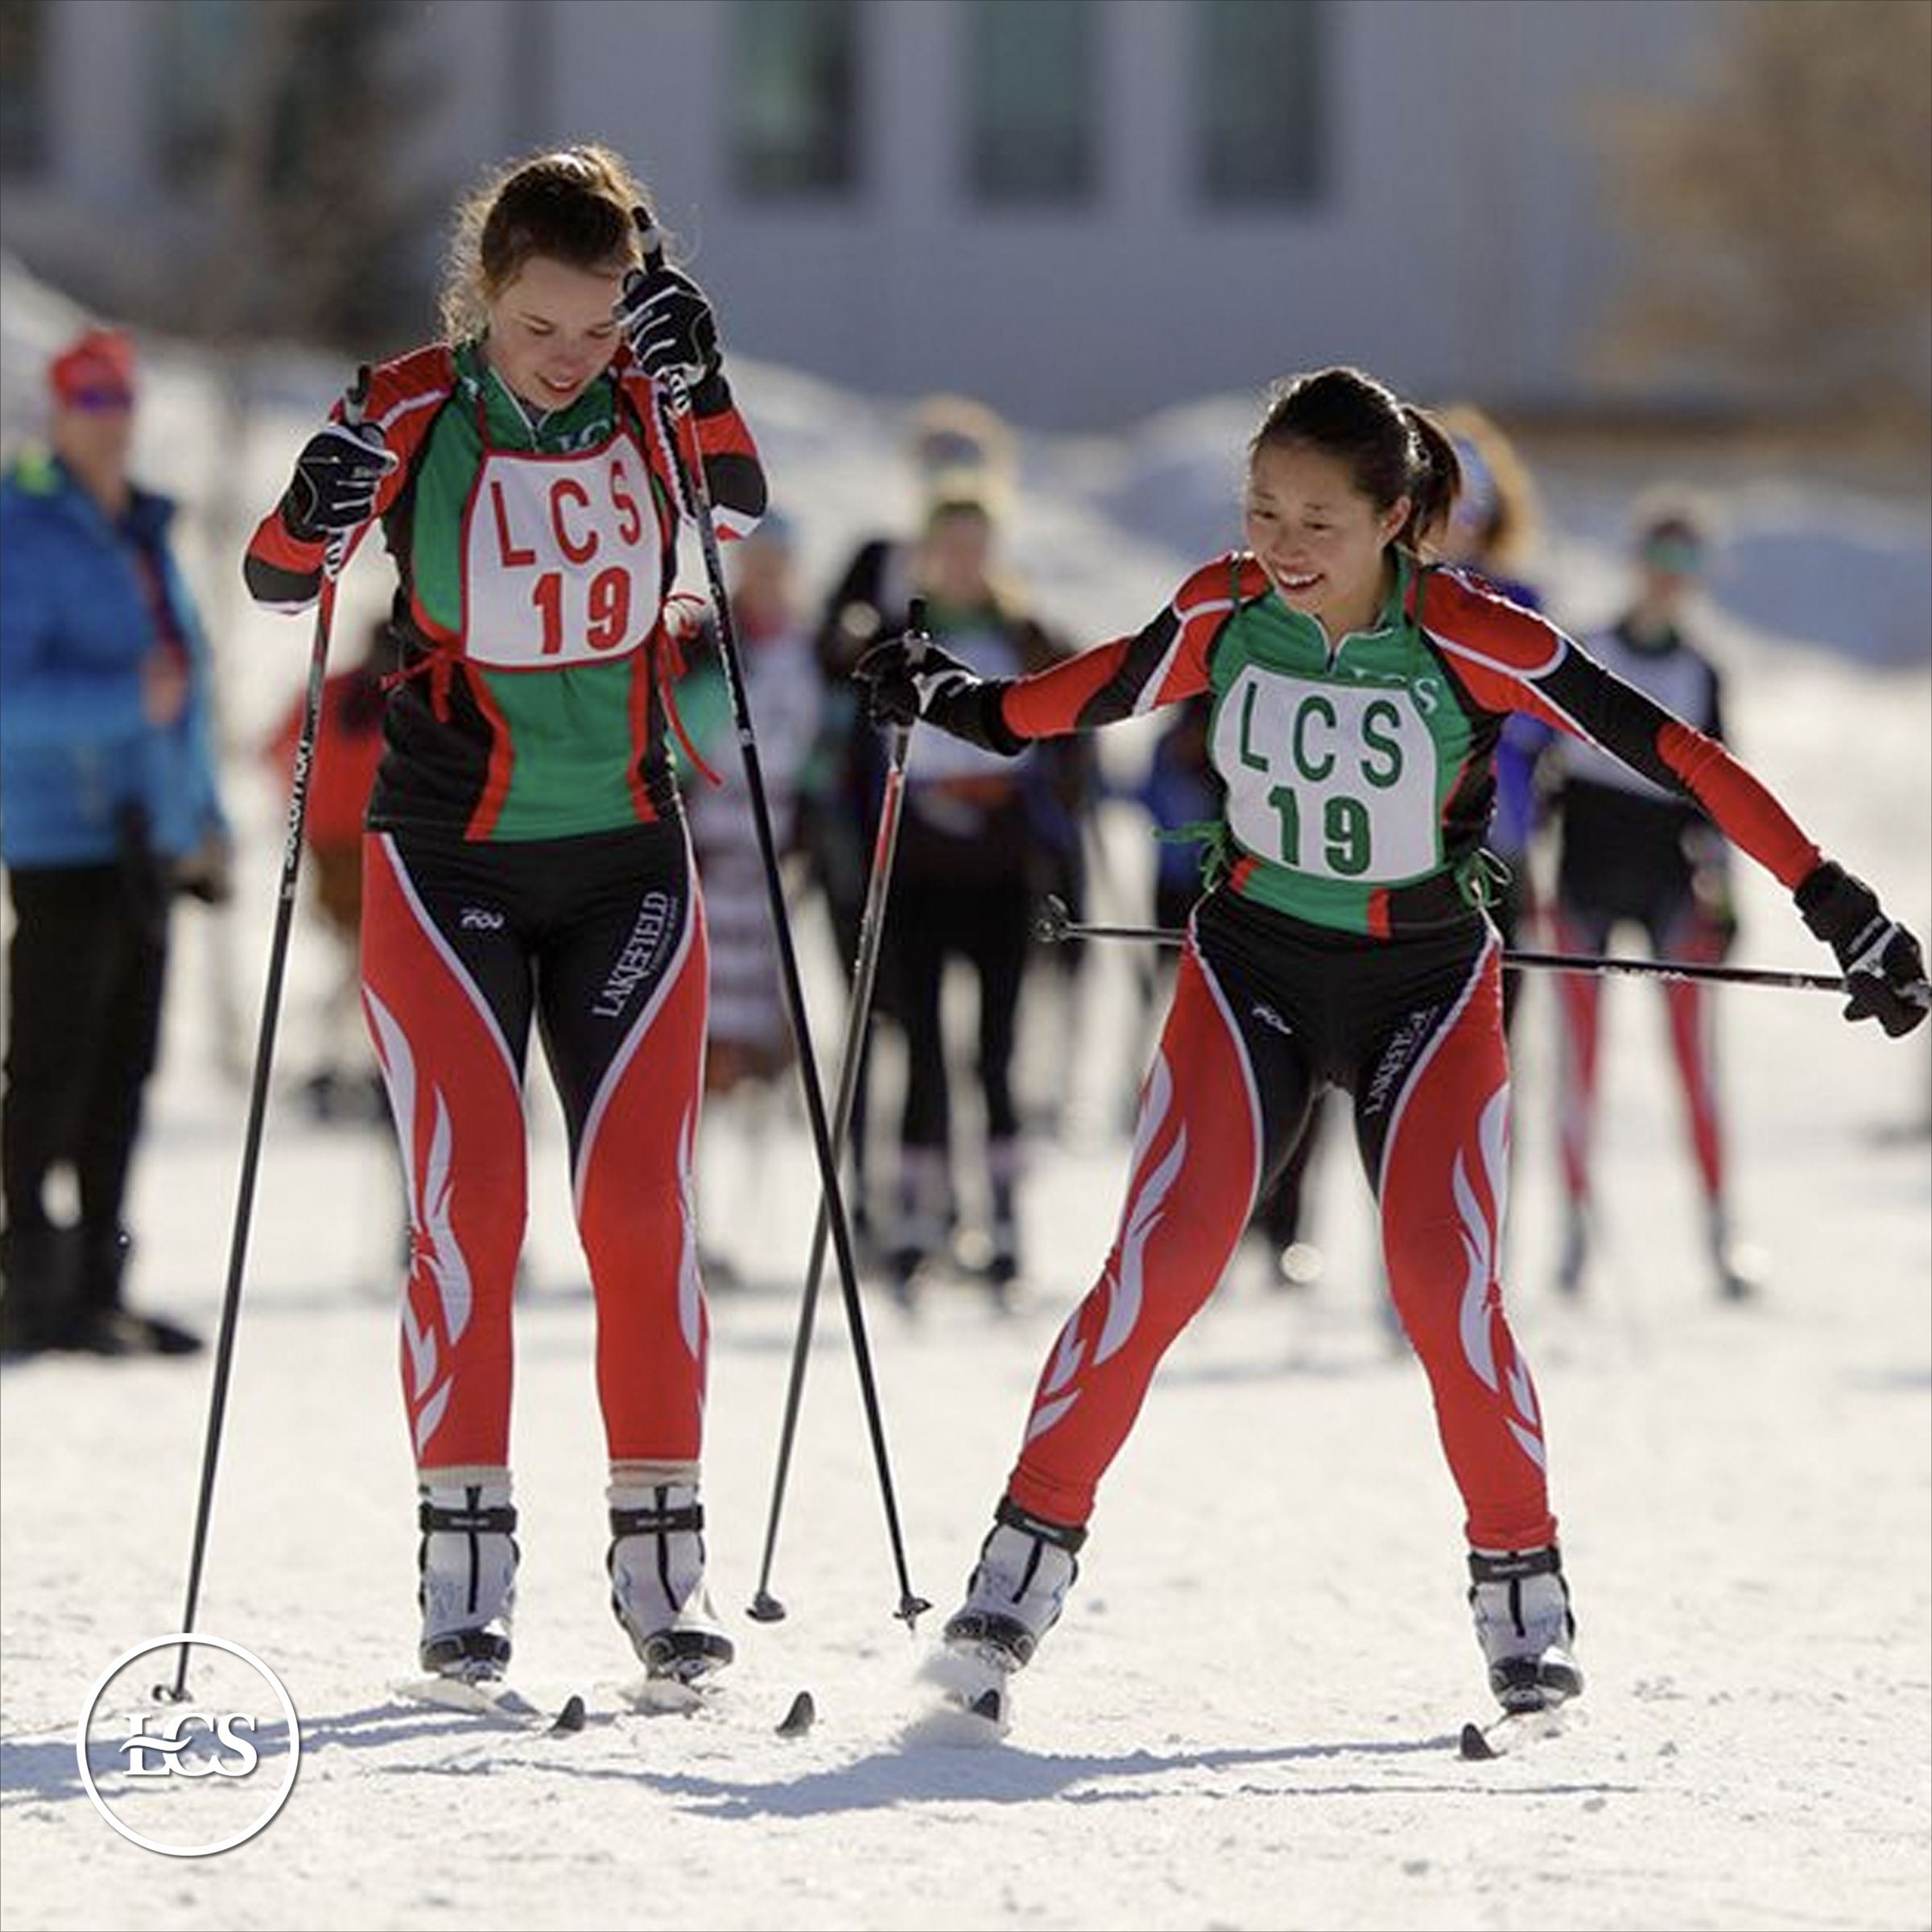 Annual Nordic Ski Invitational